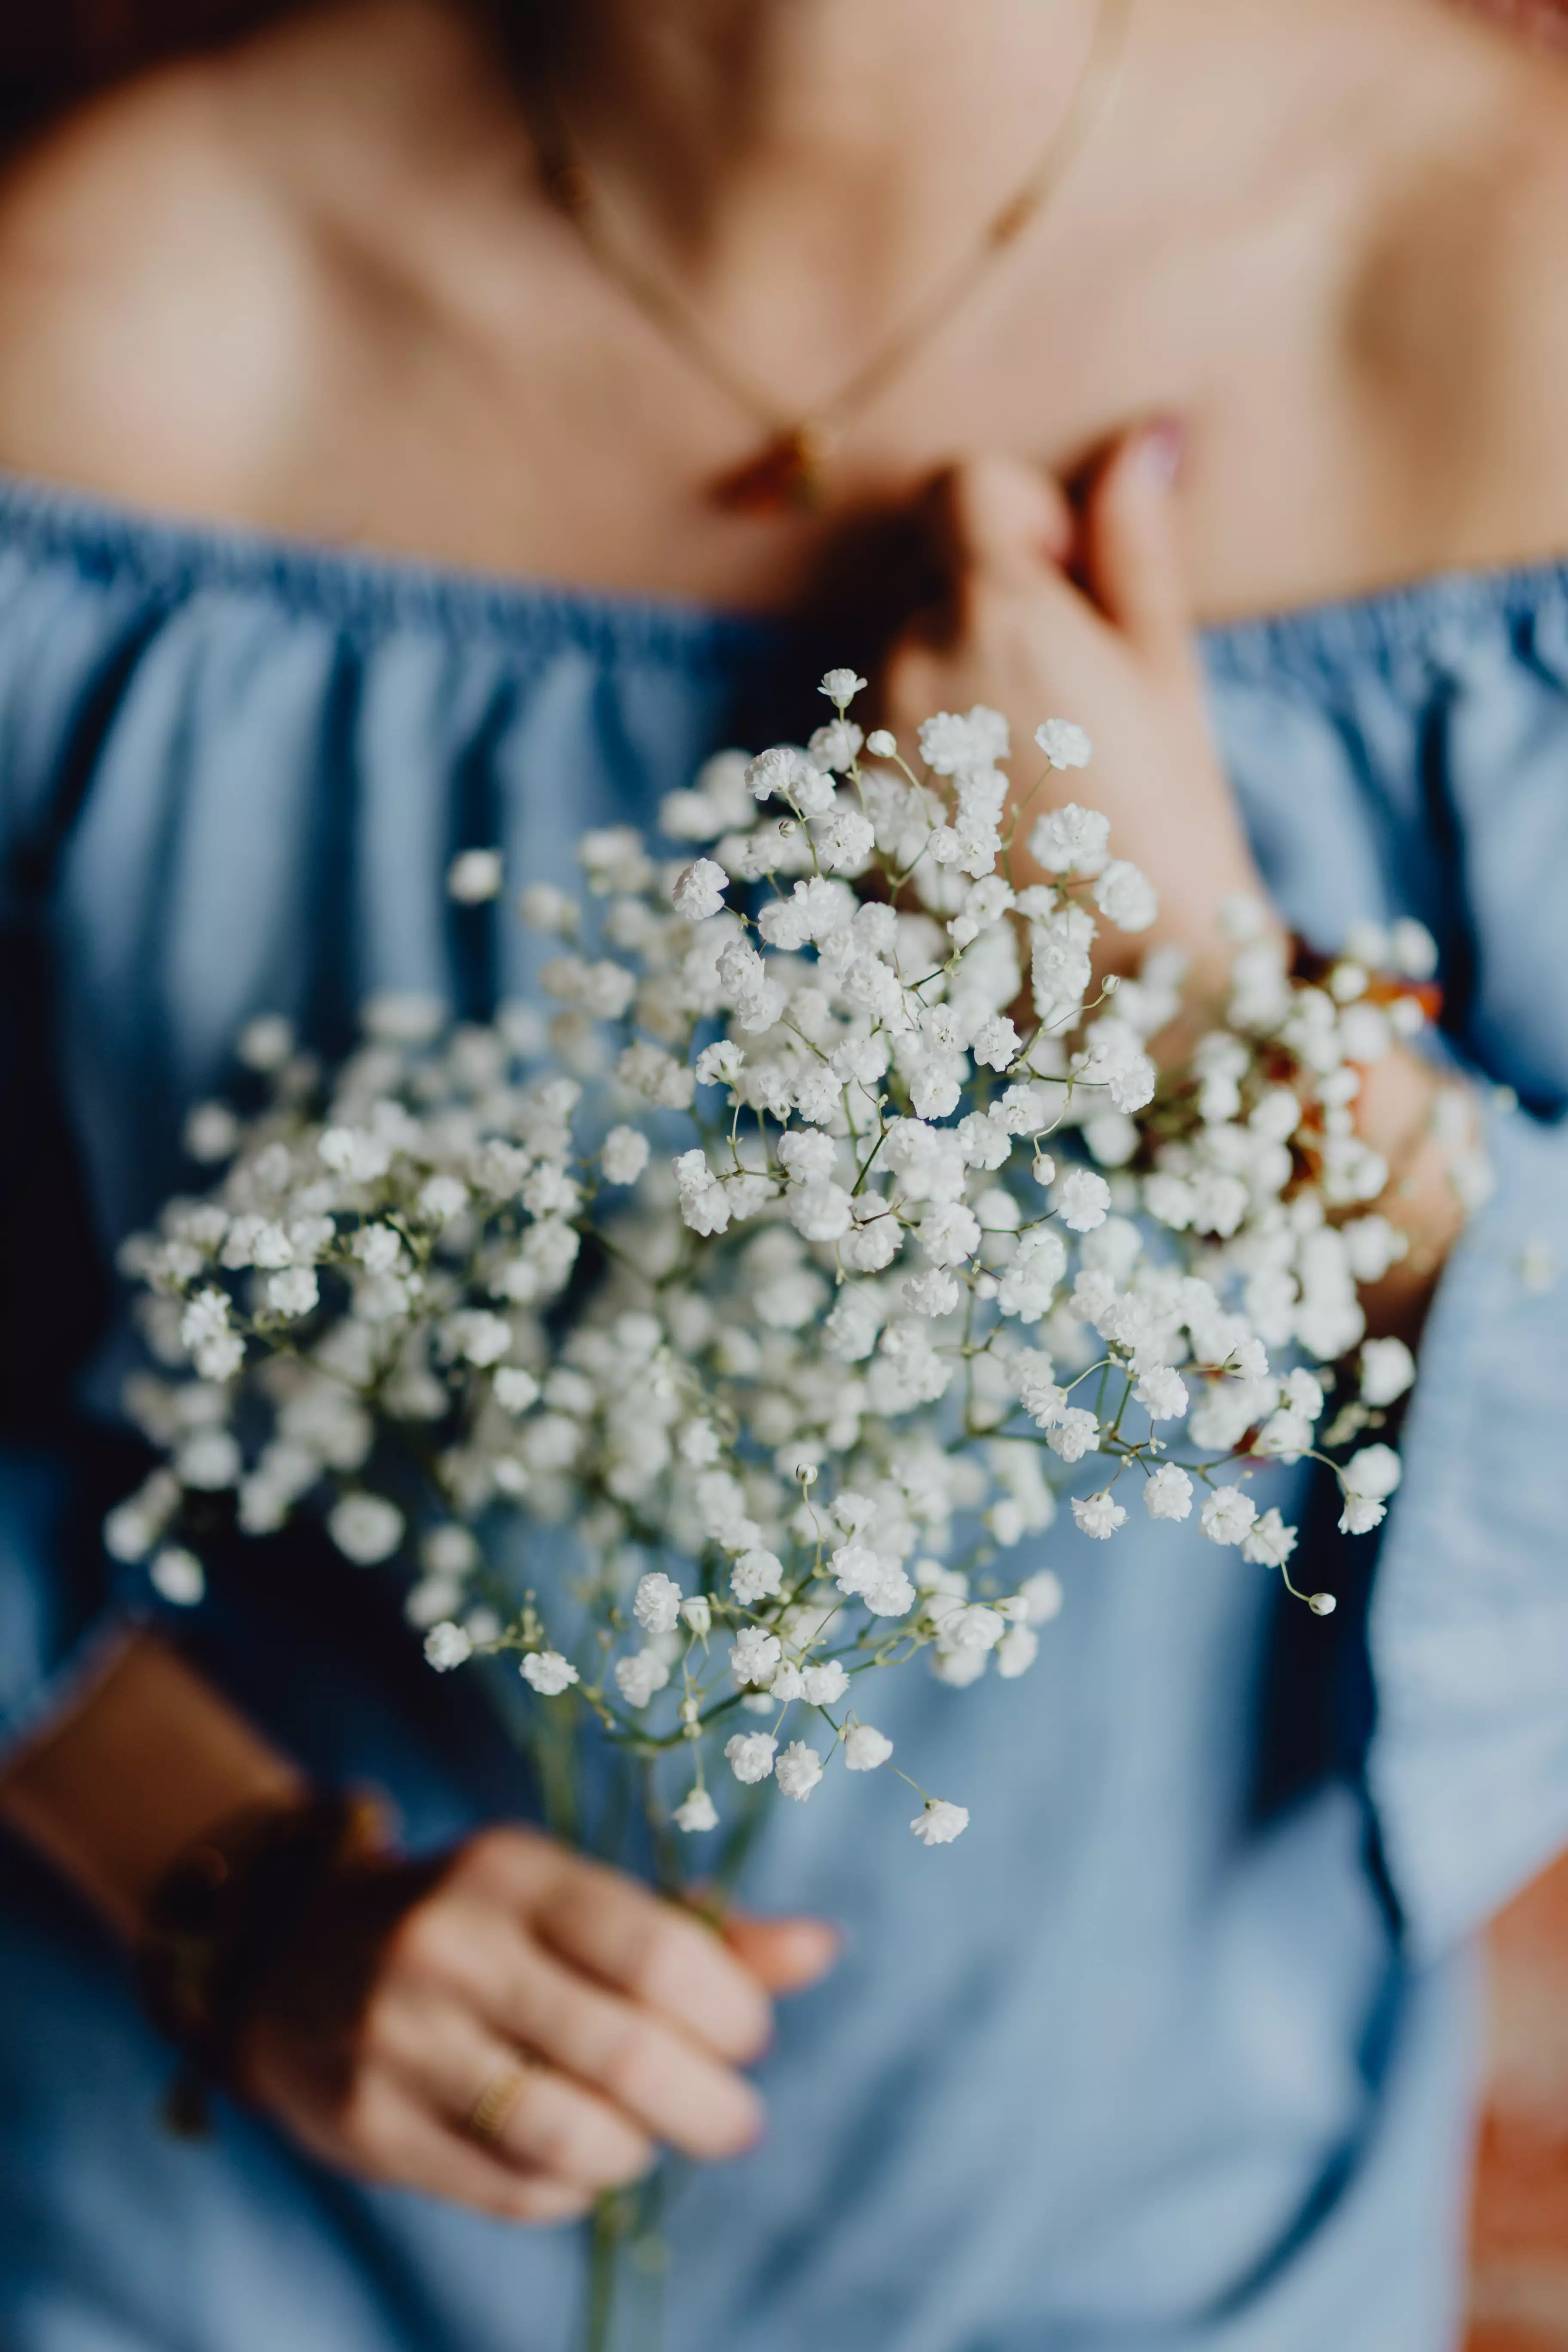 How Long Does Baby's Breath Last : baby's, breath, Baby's, Breaths, Meaning,, Symbolism, Craftway, Floral